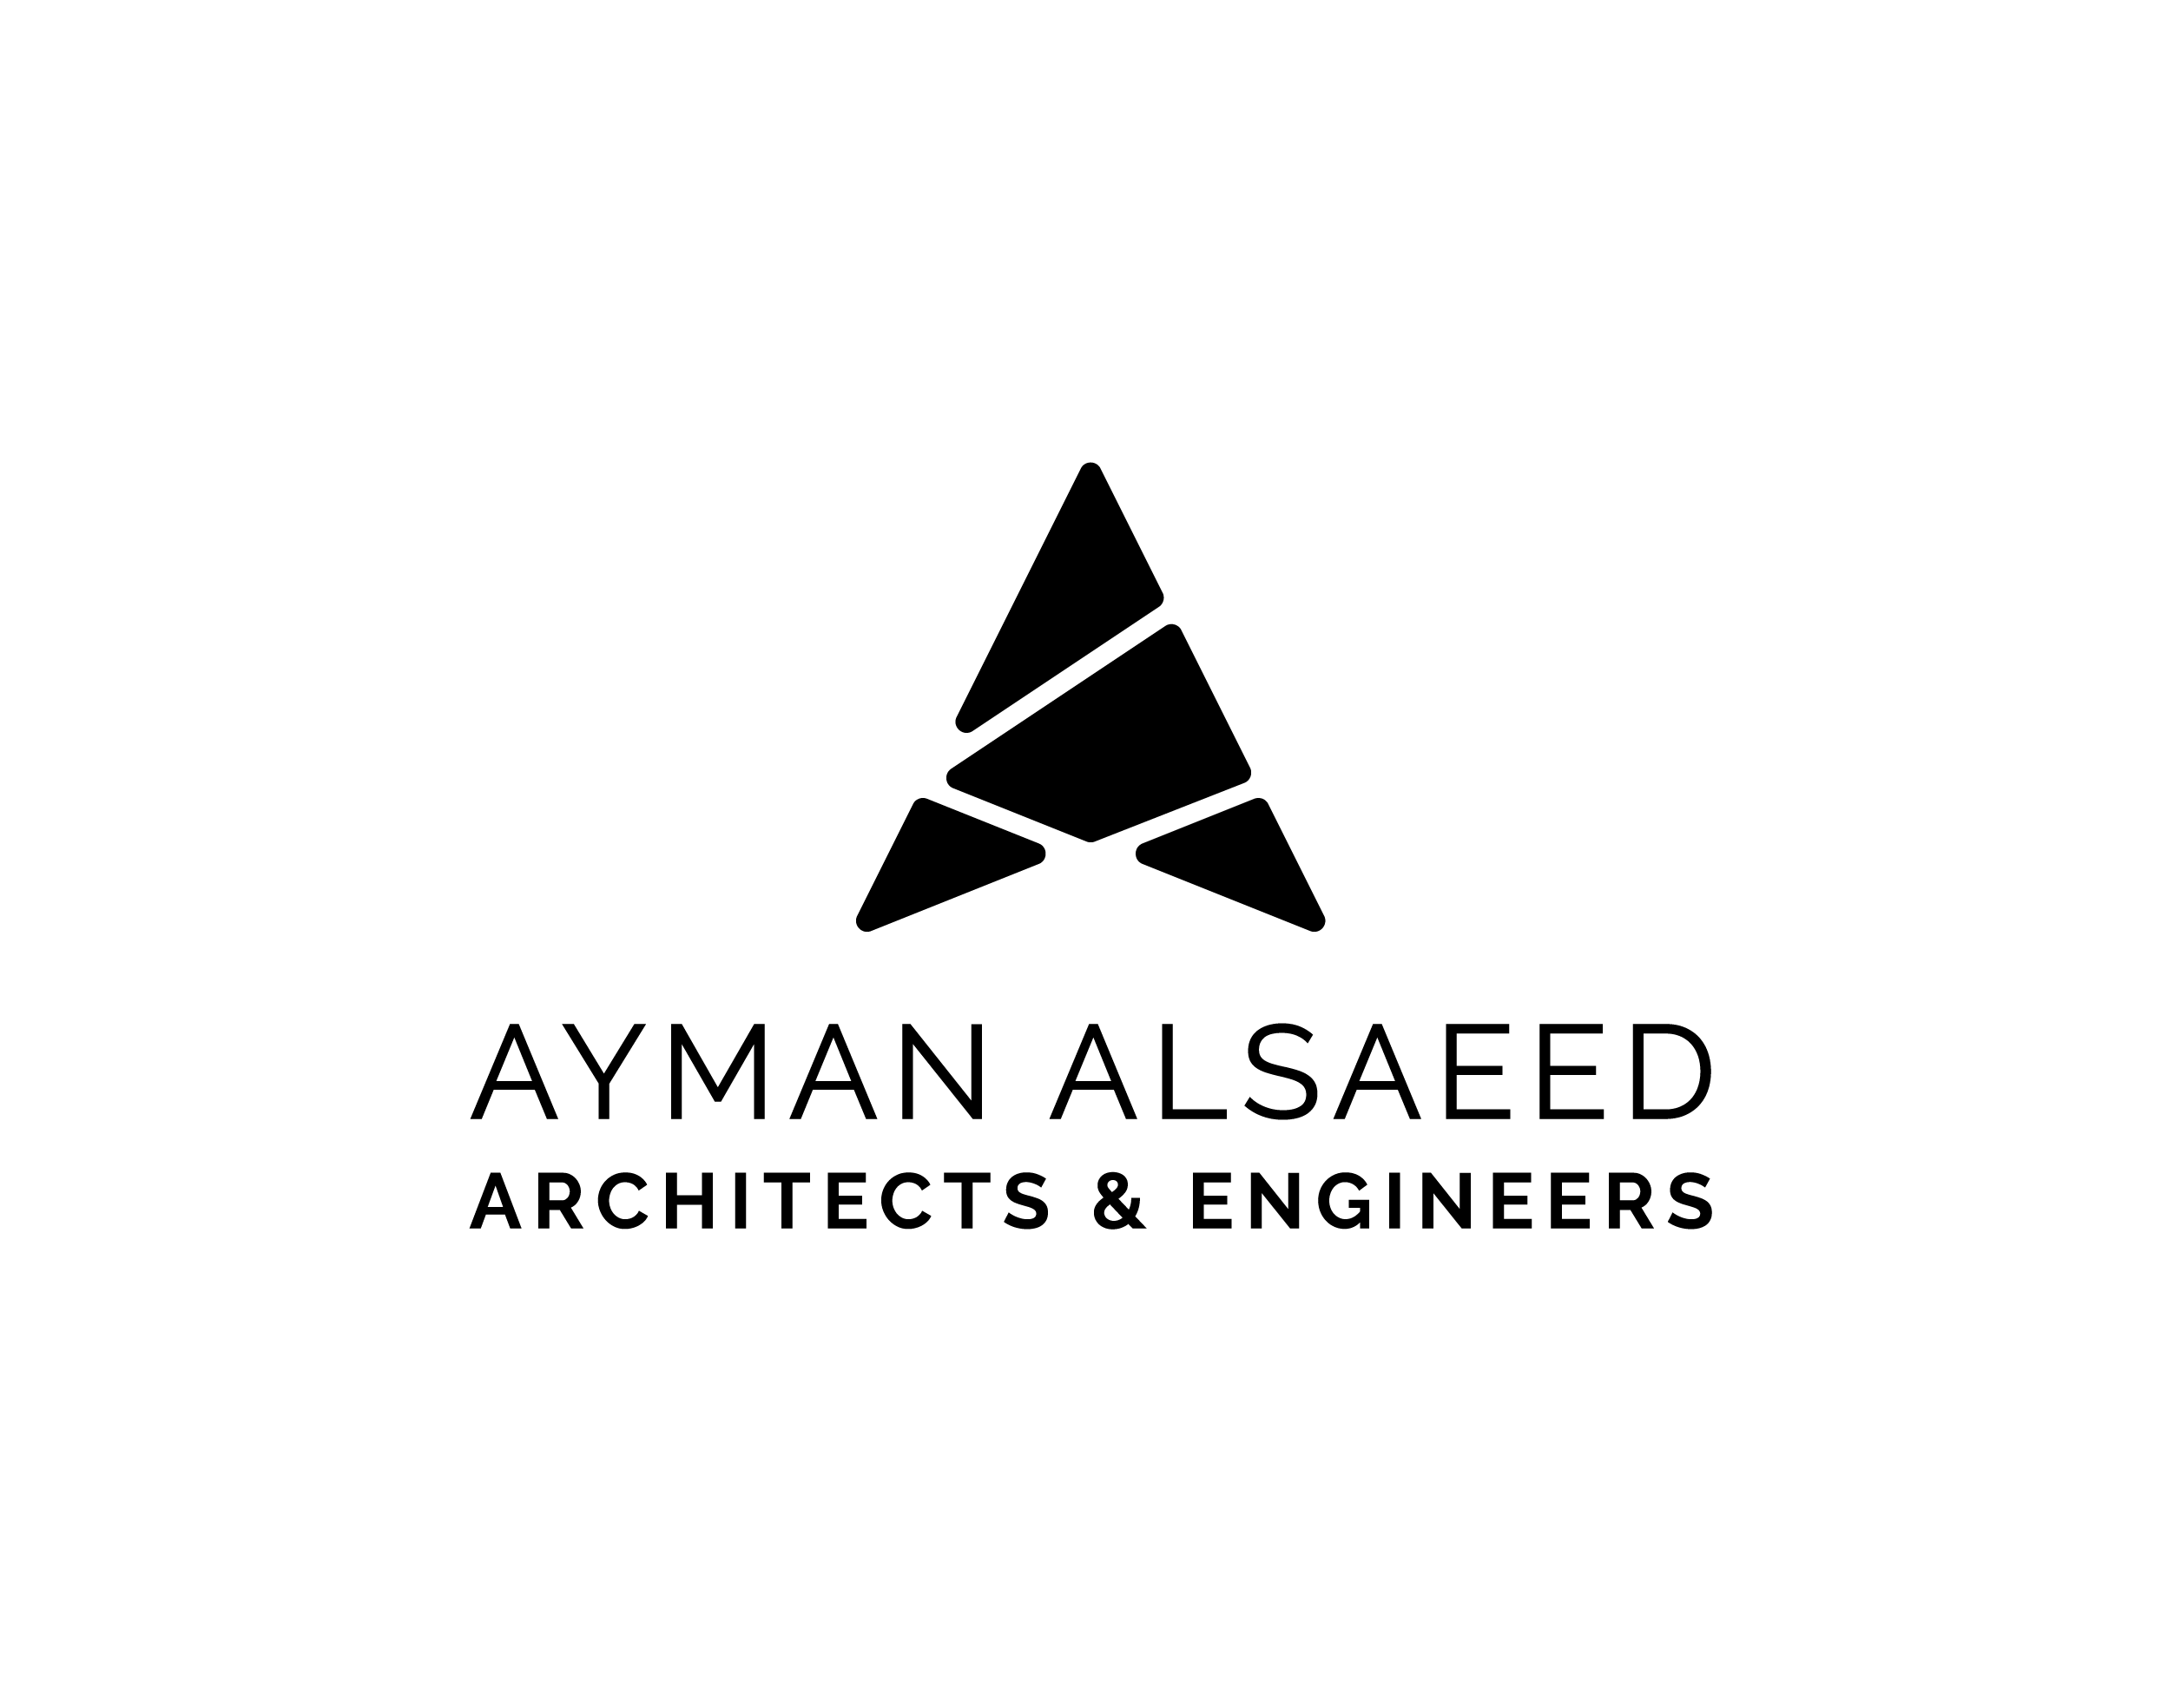 Branding work for Ayman Alsaeed Architects & Engineers